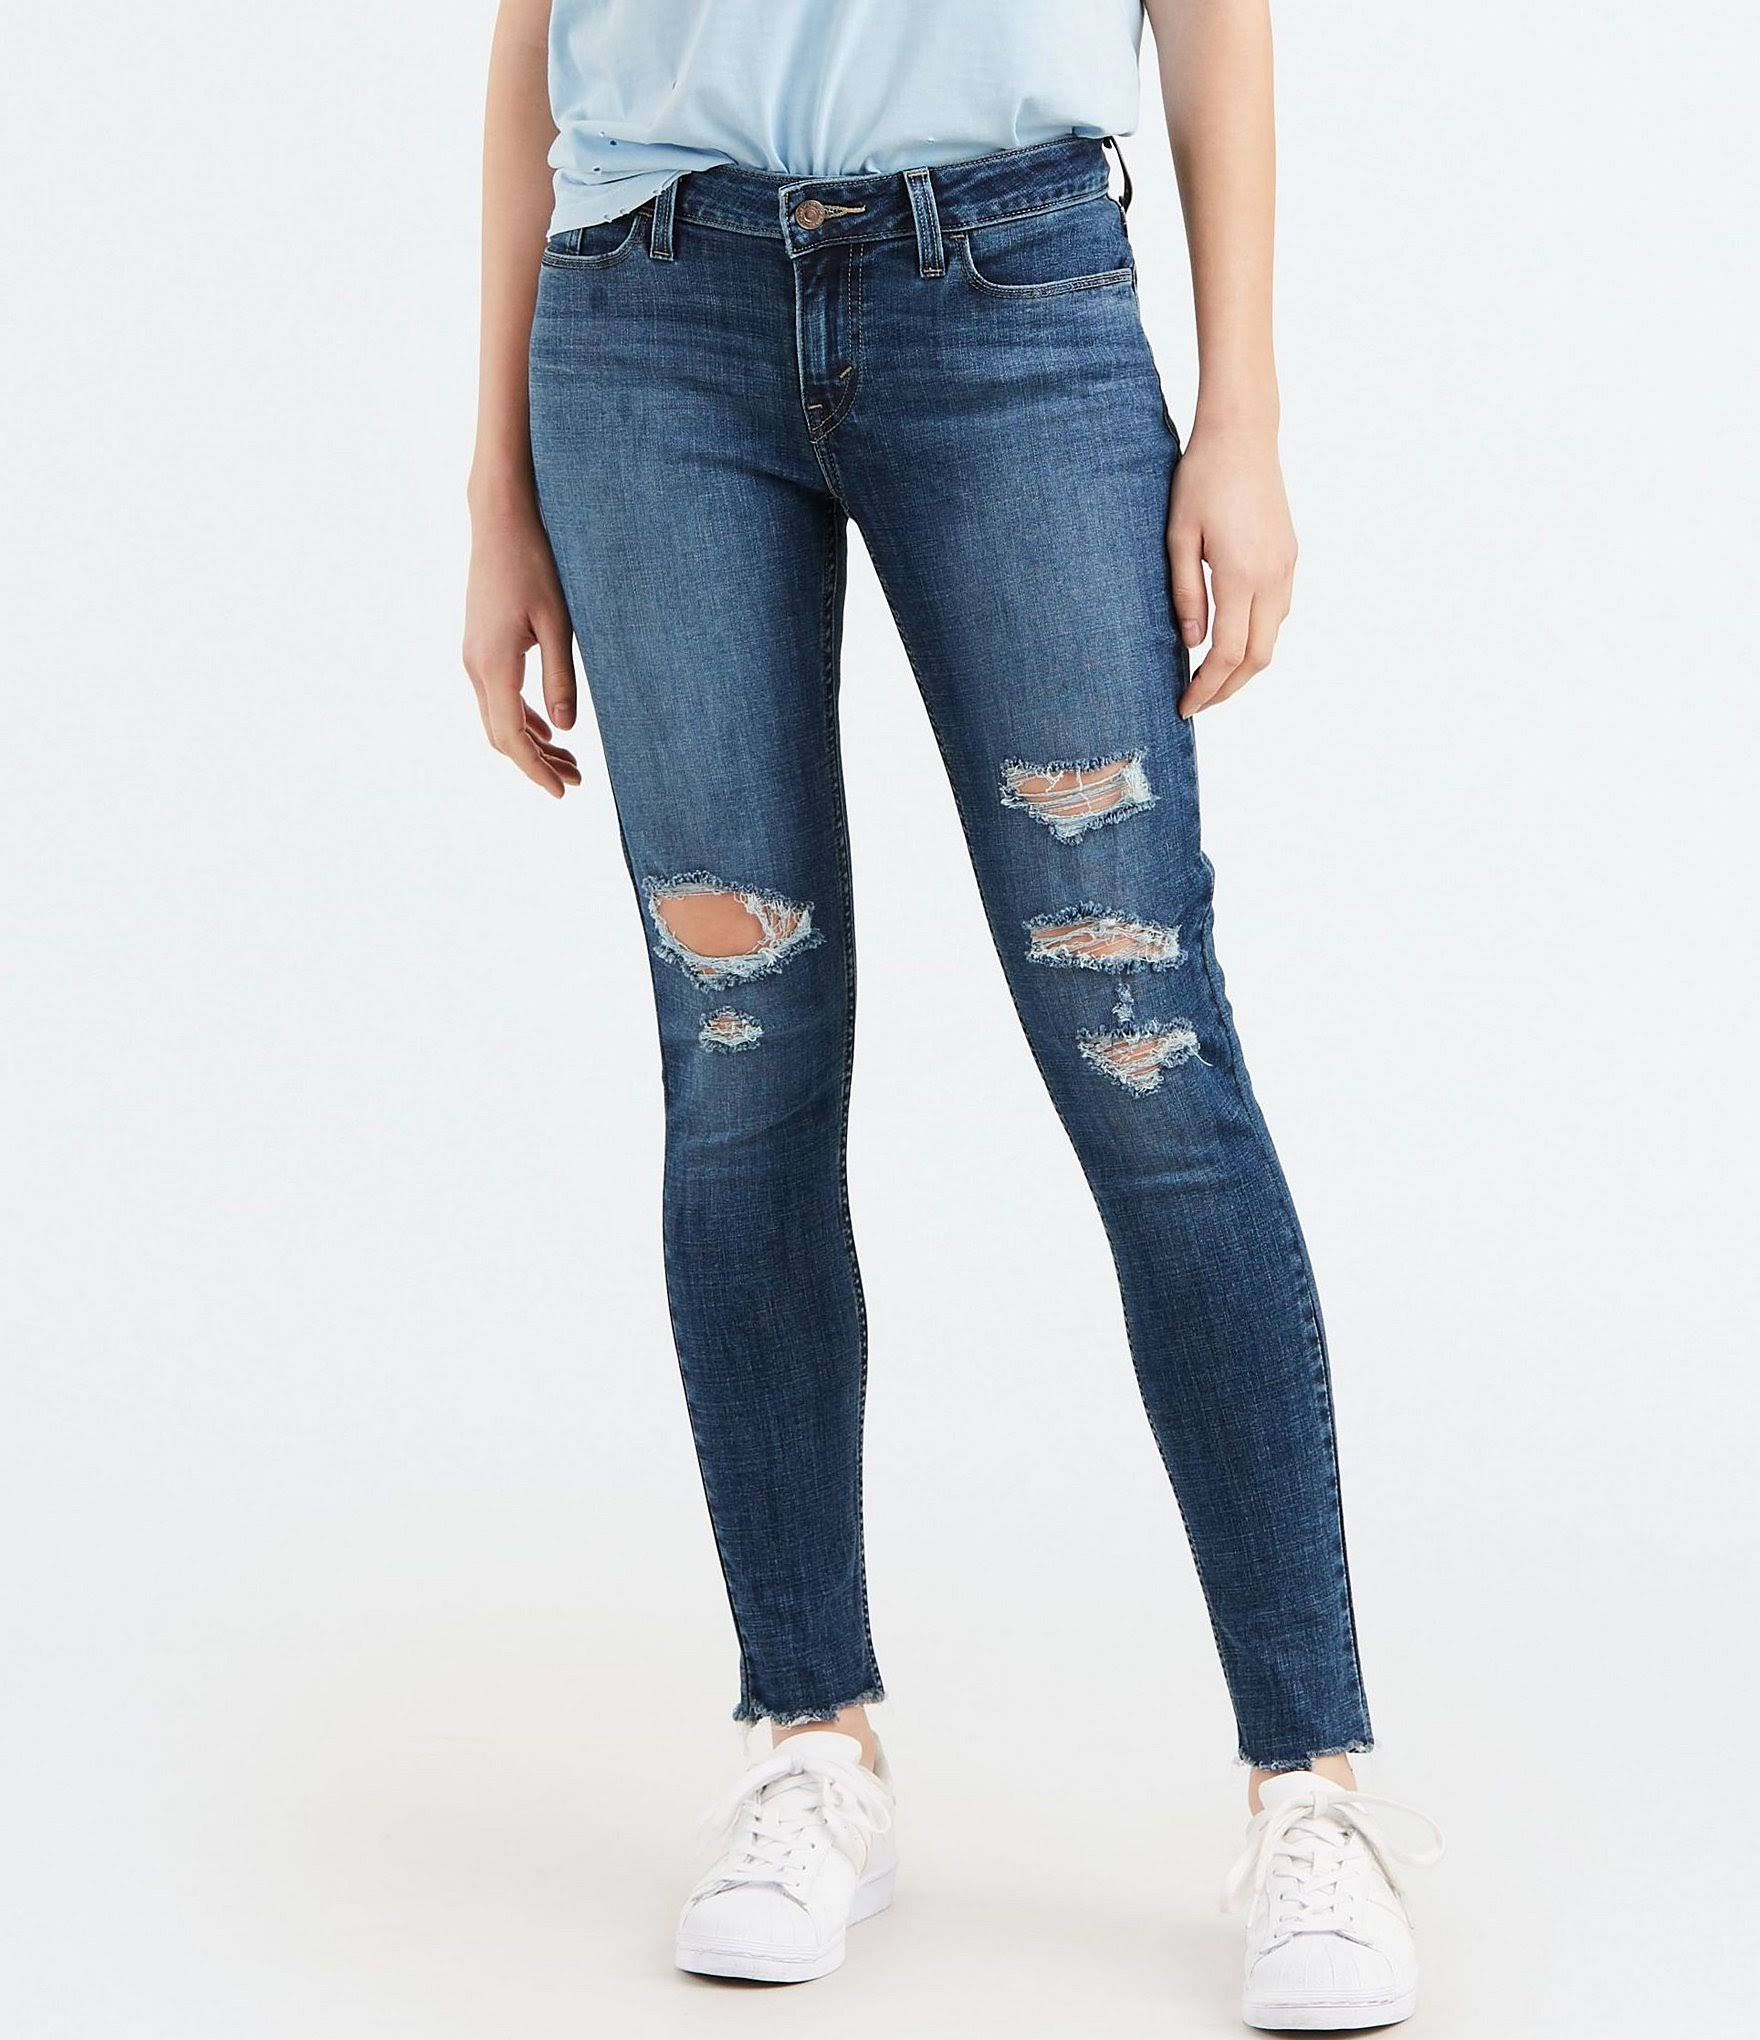 Jeans Levi's Constellation Sky Skinny 535 30 28 Destructed RStwq1xF